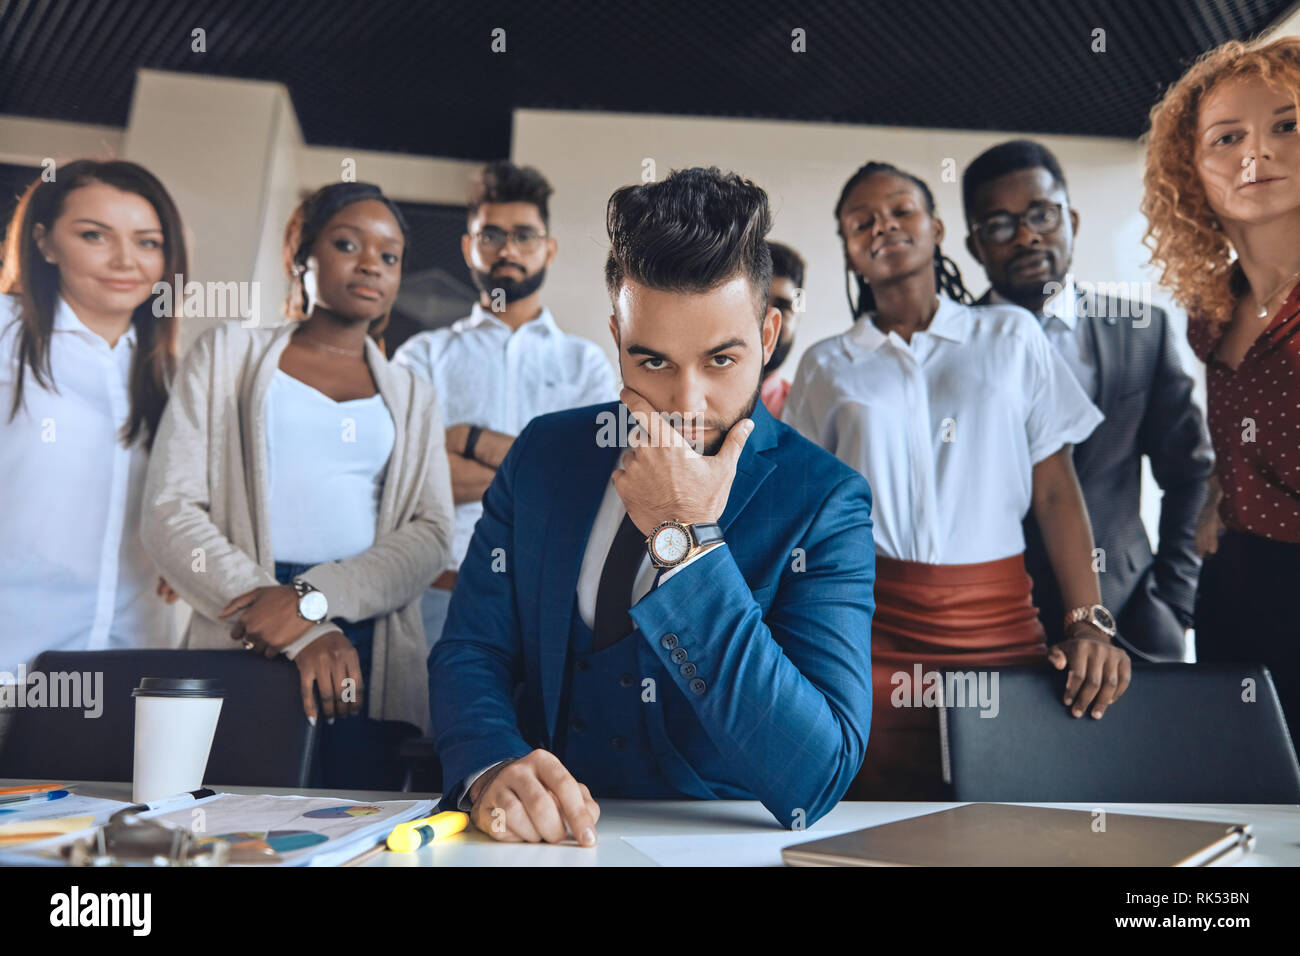 creative smart leader with advanced goals. handsome bearded boss touching his chin while his co-workers standing behind him - Stock Image